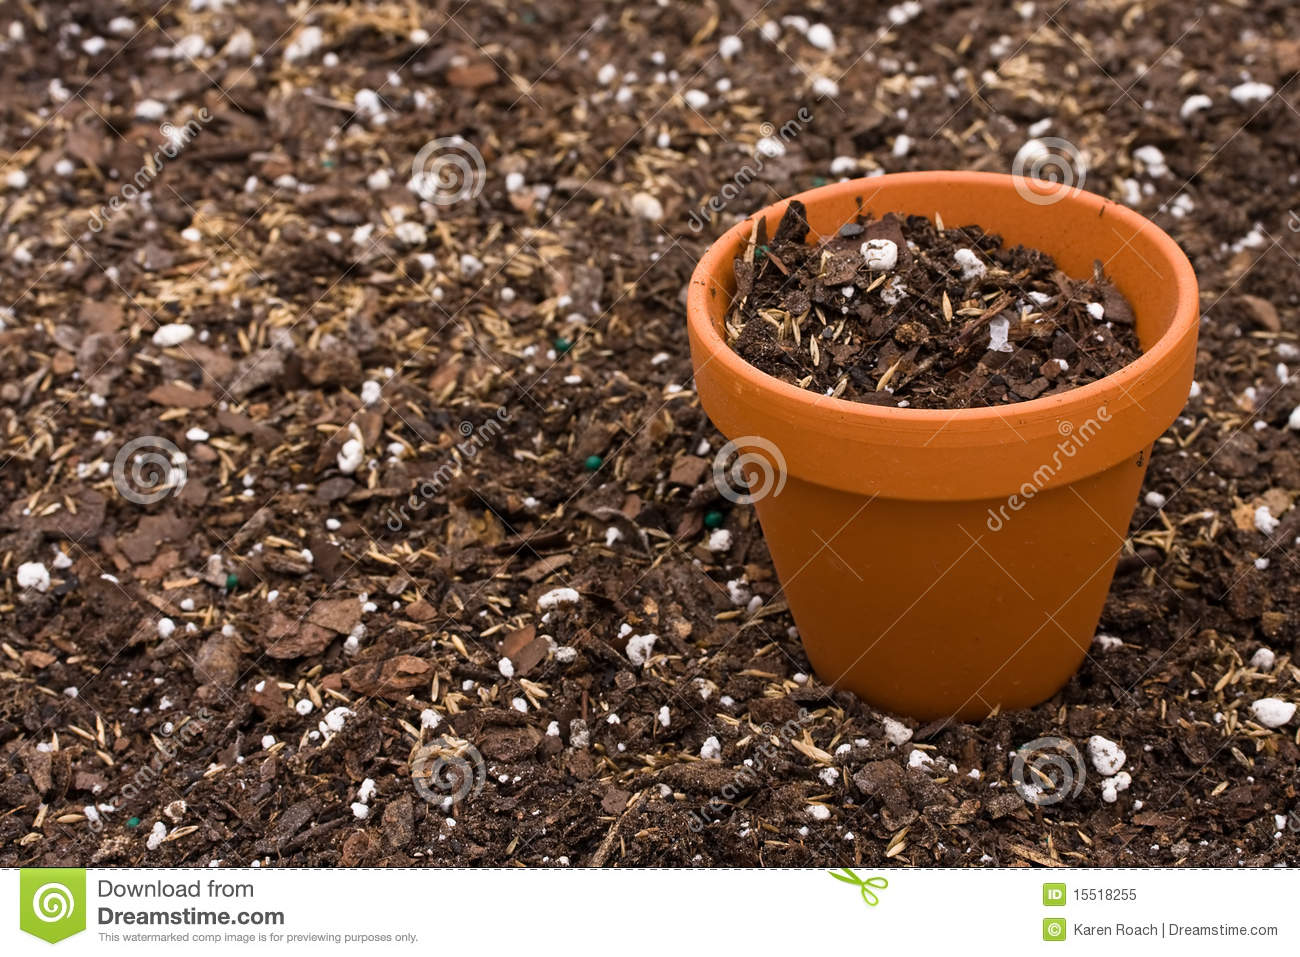 Gardening royalty free stock photo image 15518255 for Clay potting soil